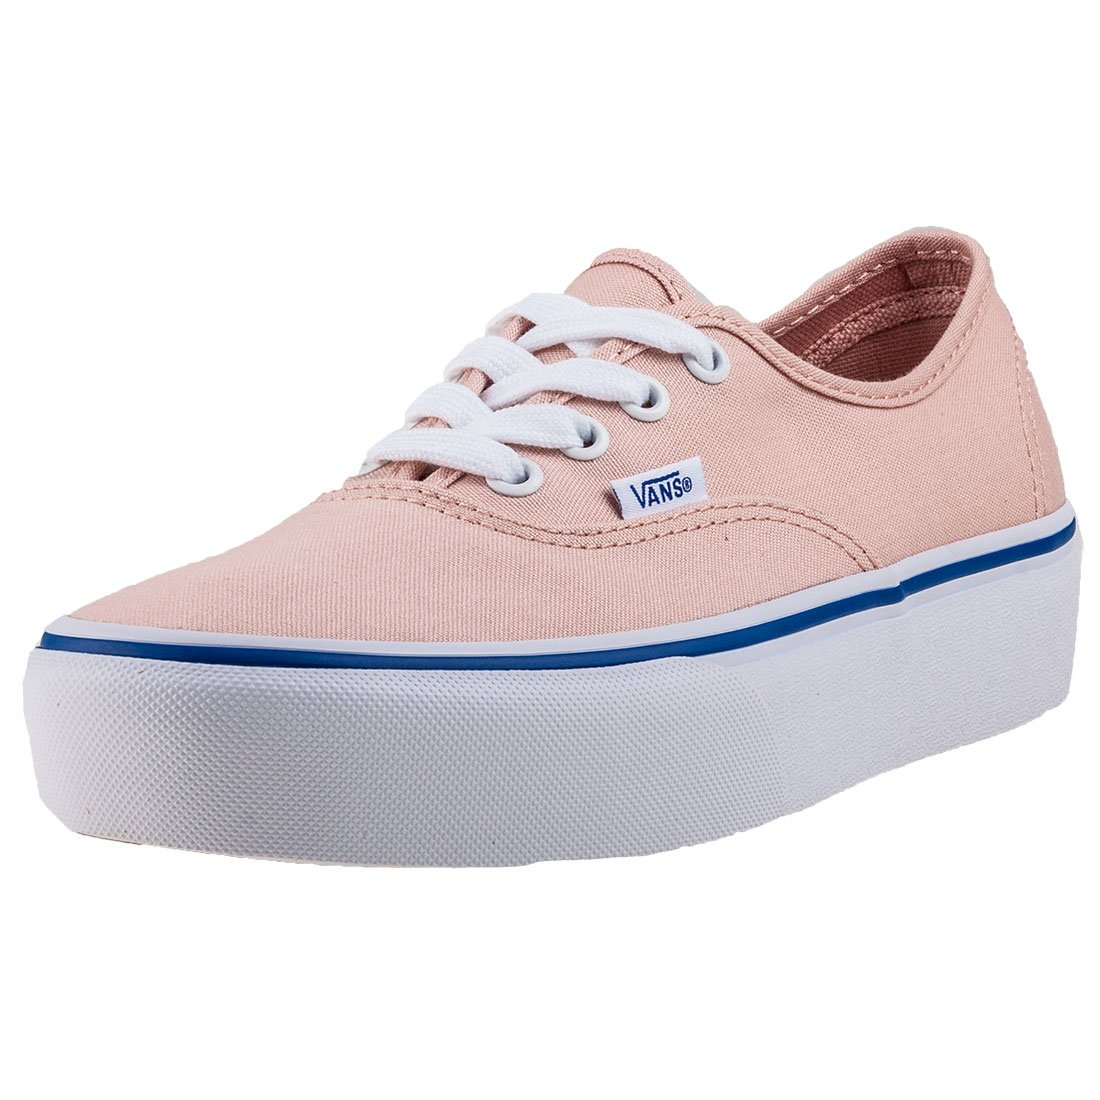 Vans Authentic Platform 20 Sneaker Damen  50 US - 365 EU